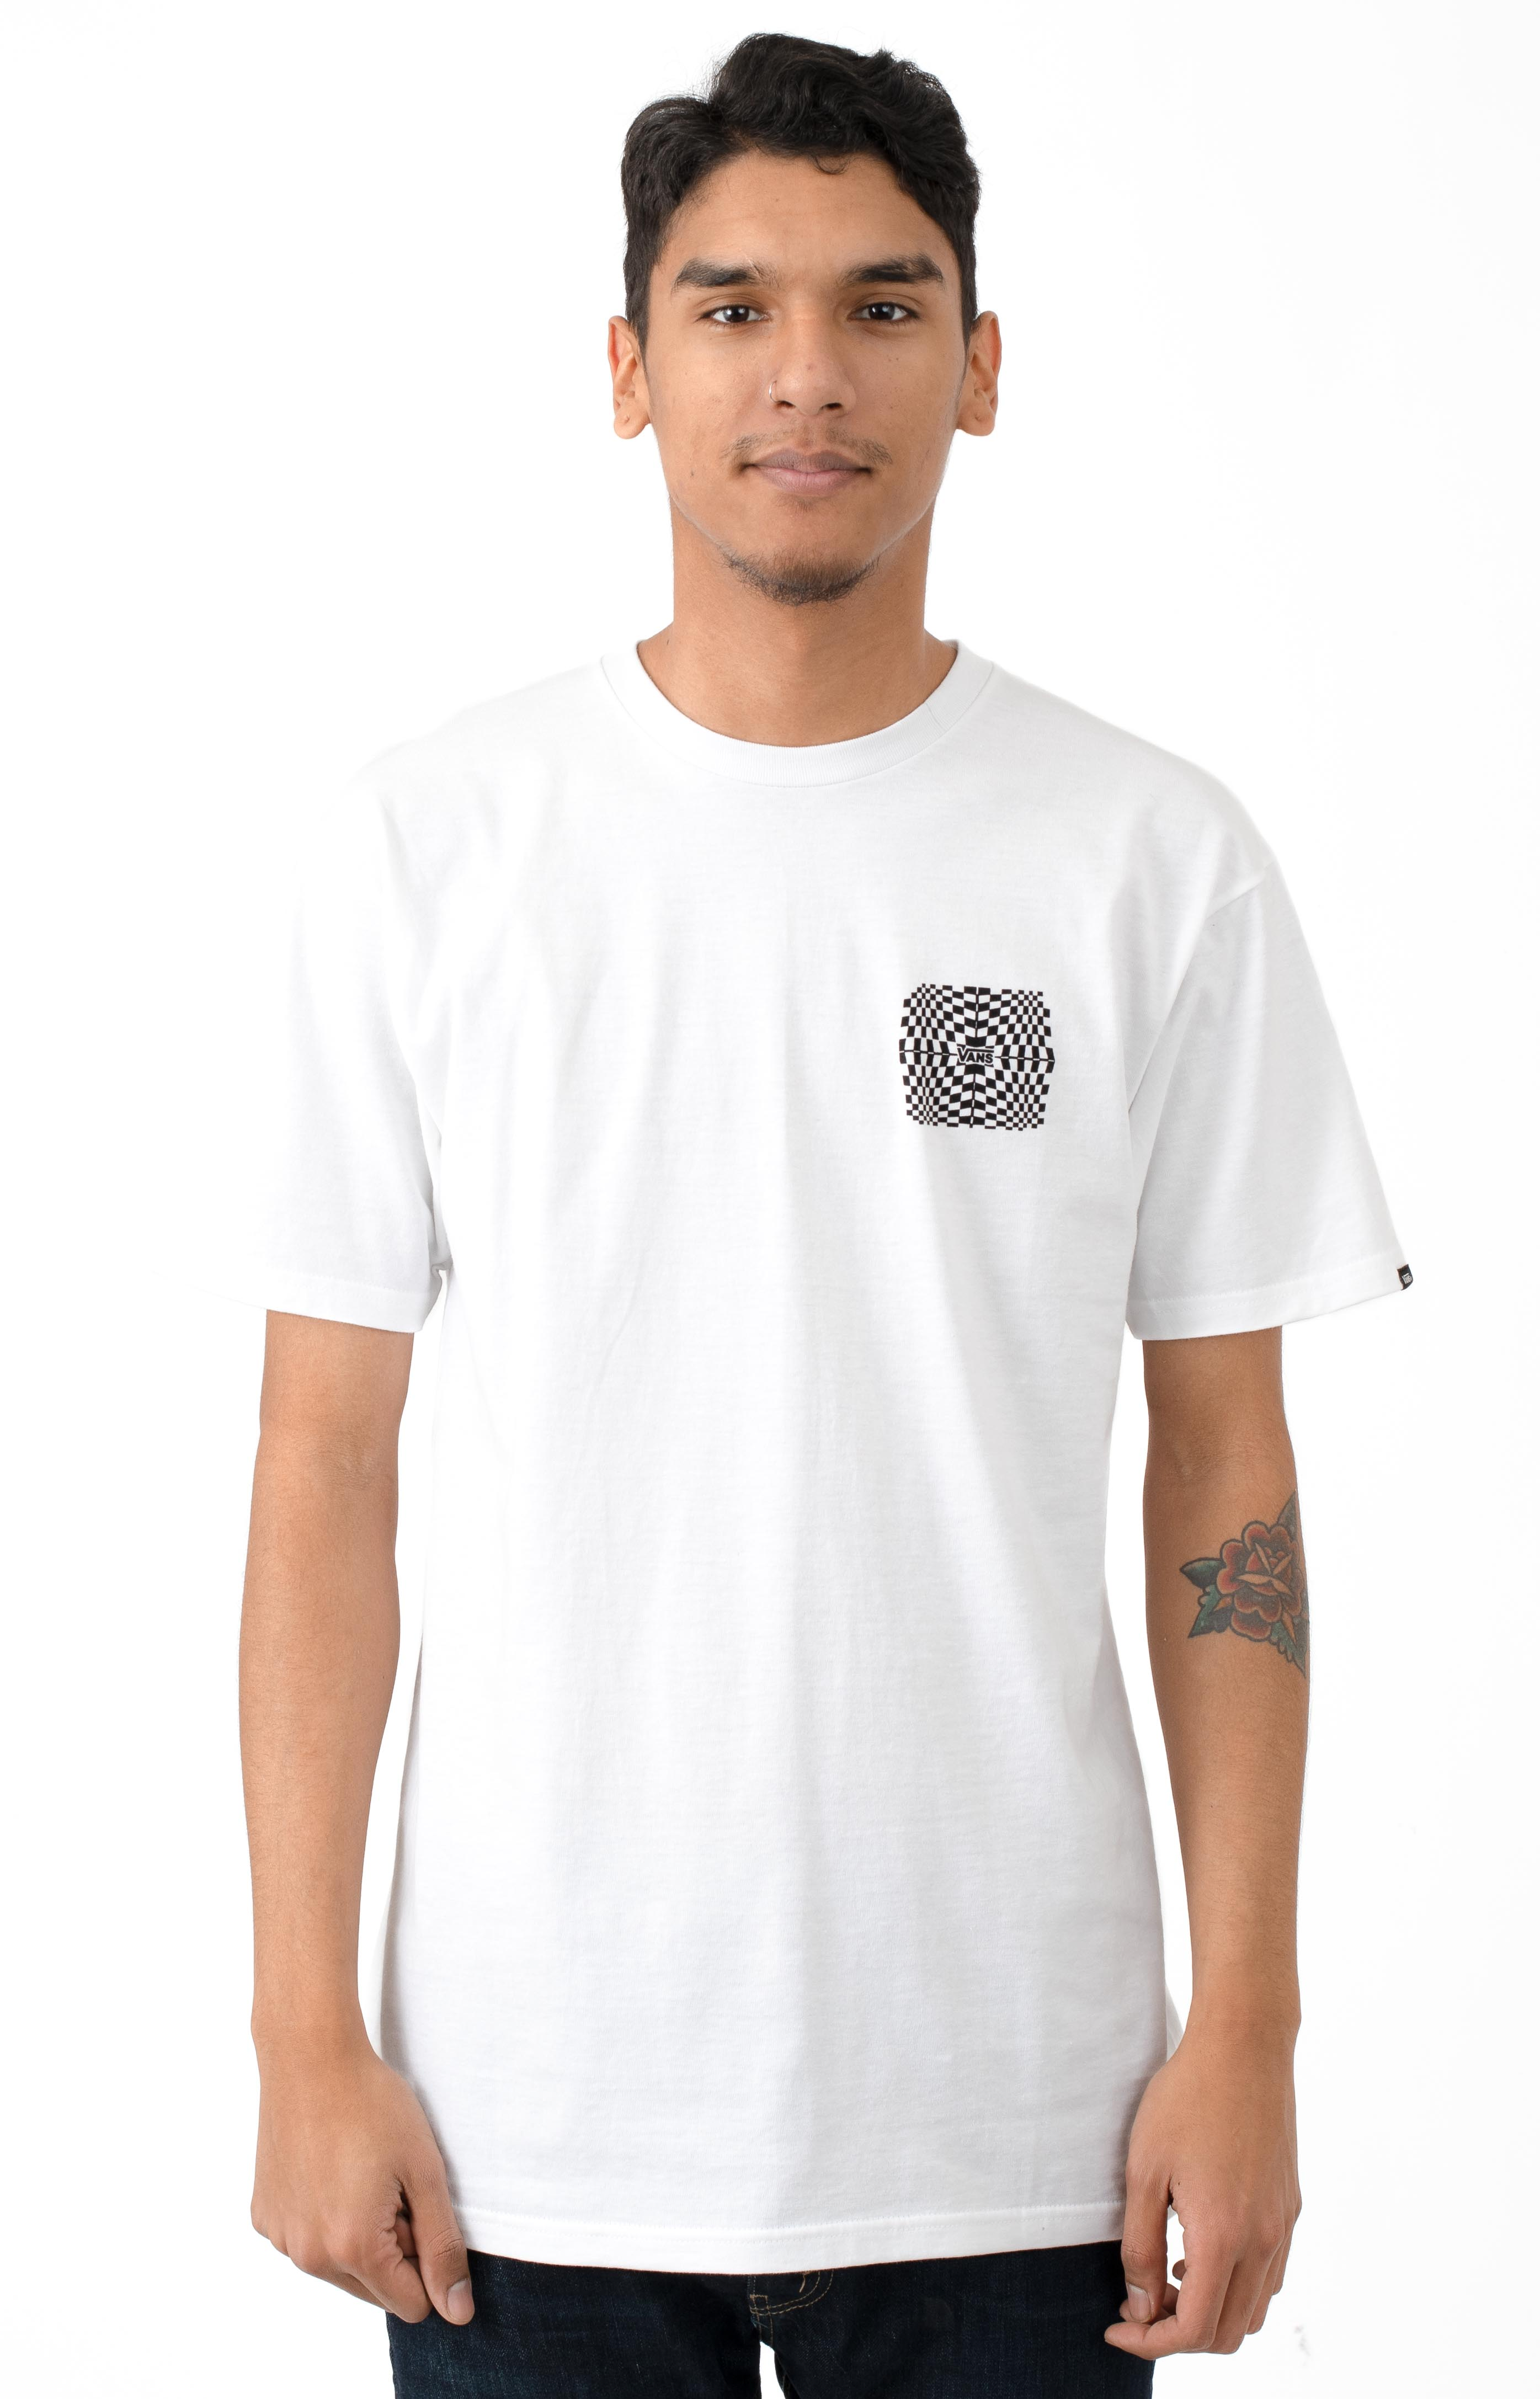 Warped Check T-Shirt - White